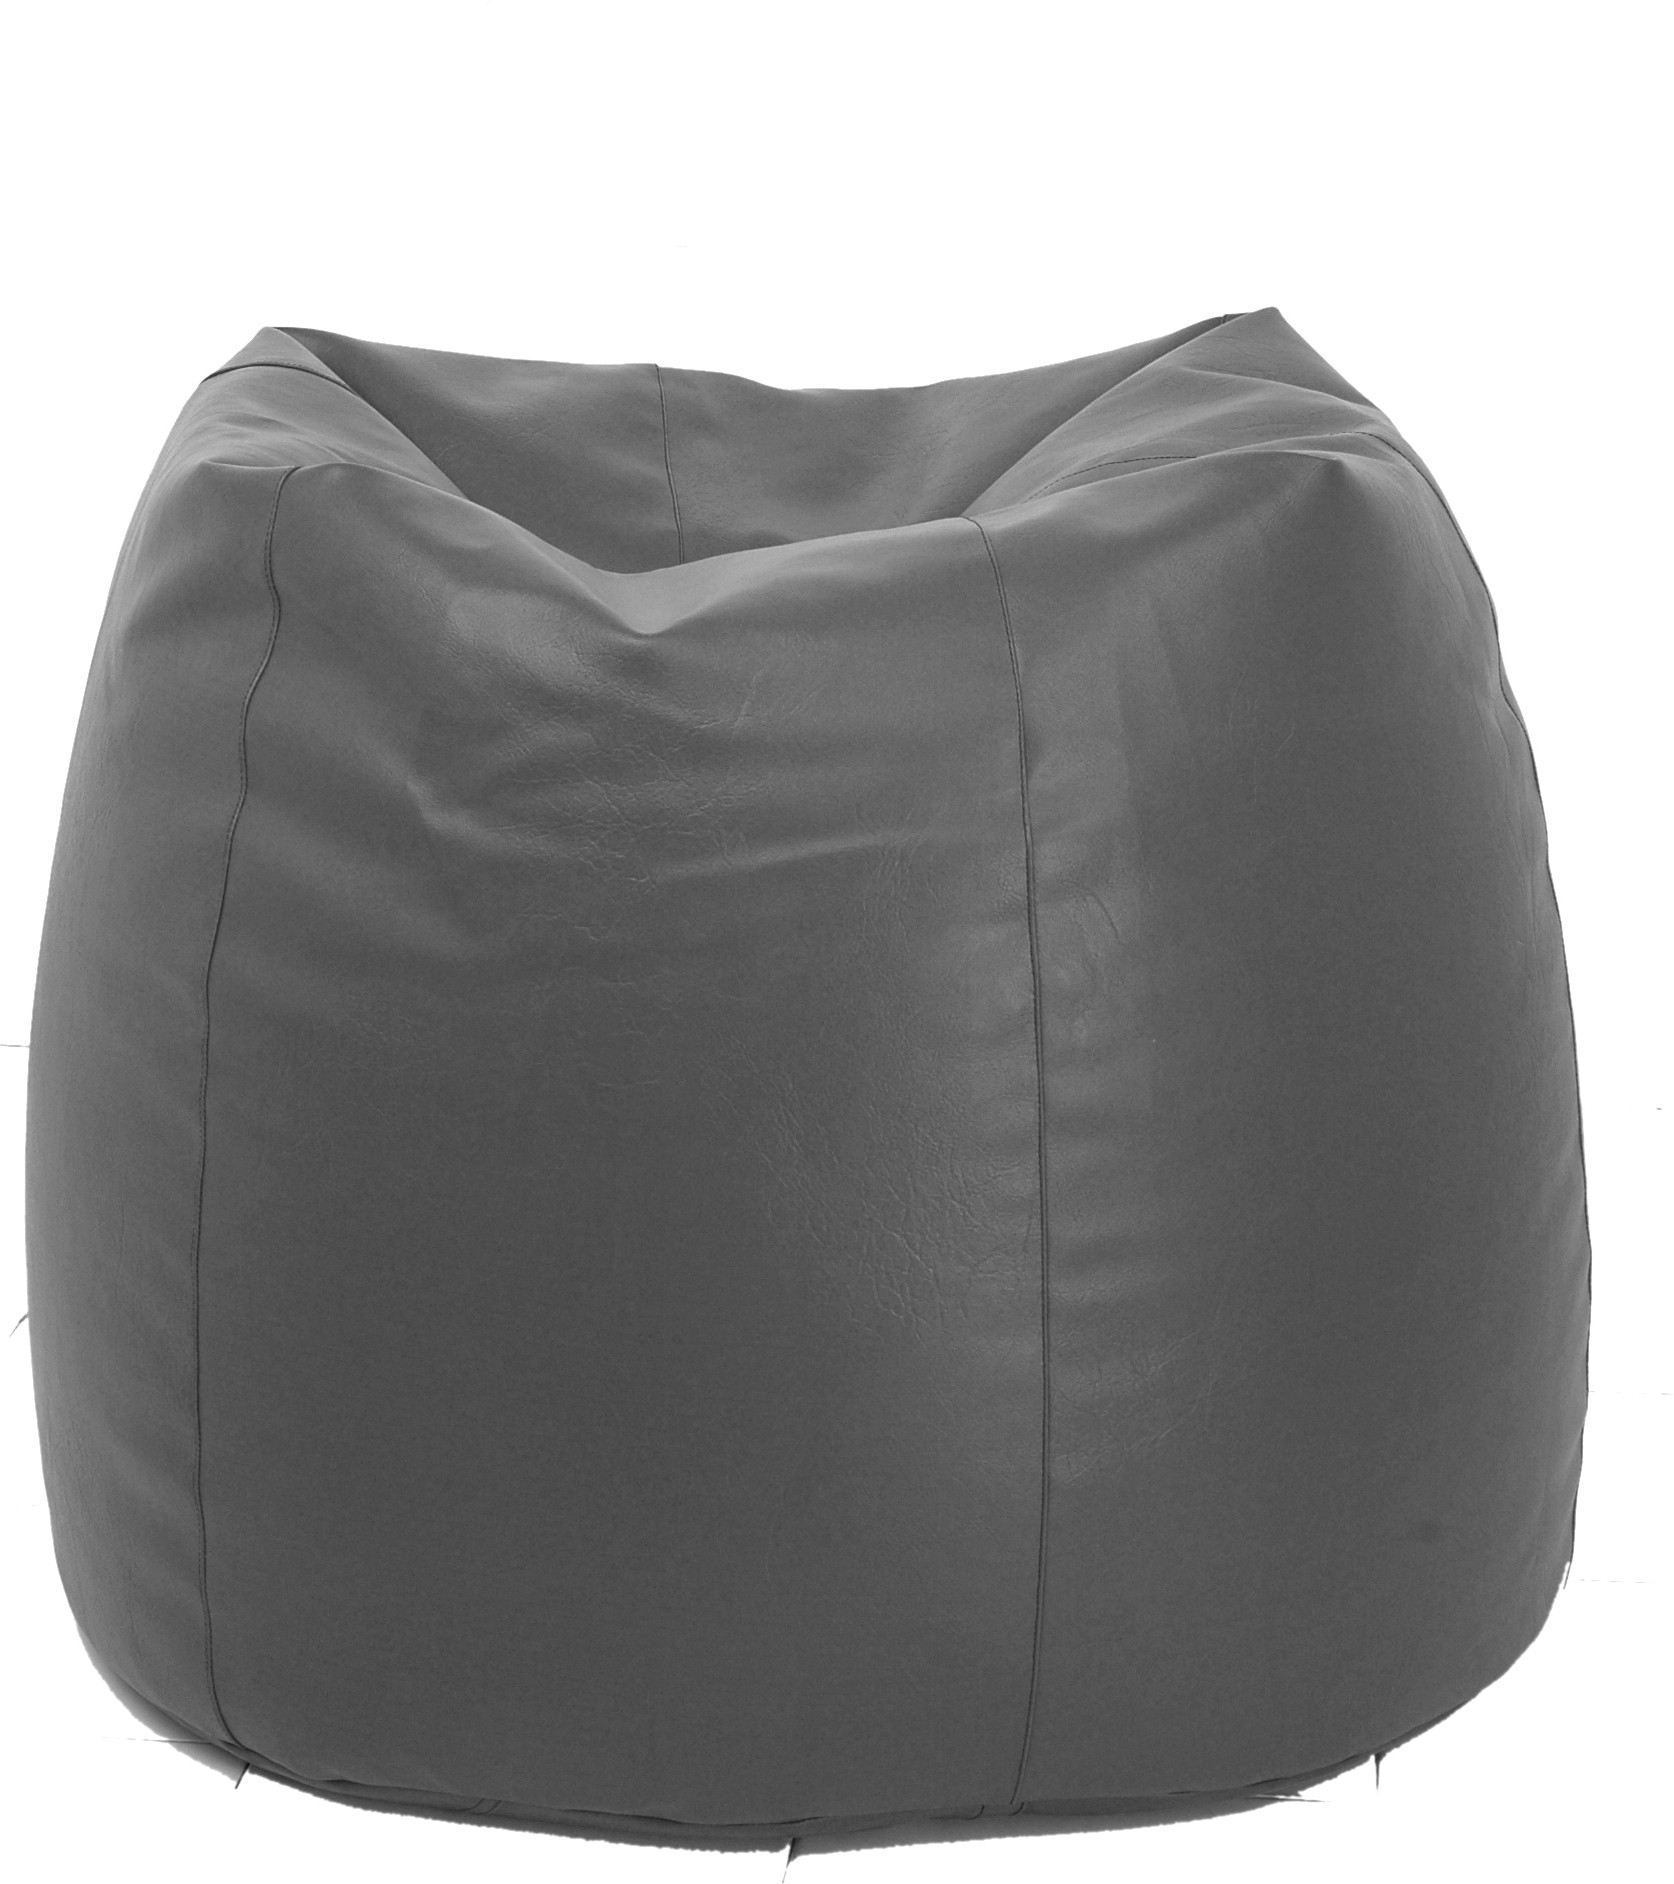 View Cosmo XL Bean Bag Cover(Grey) Furniture (Cosmo)